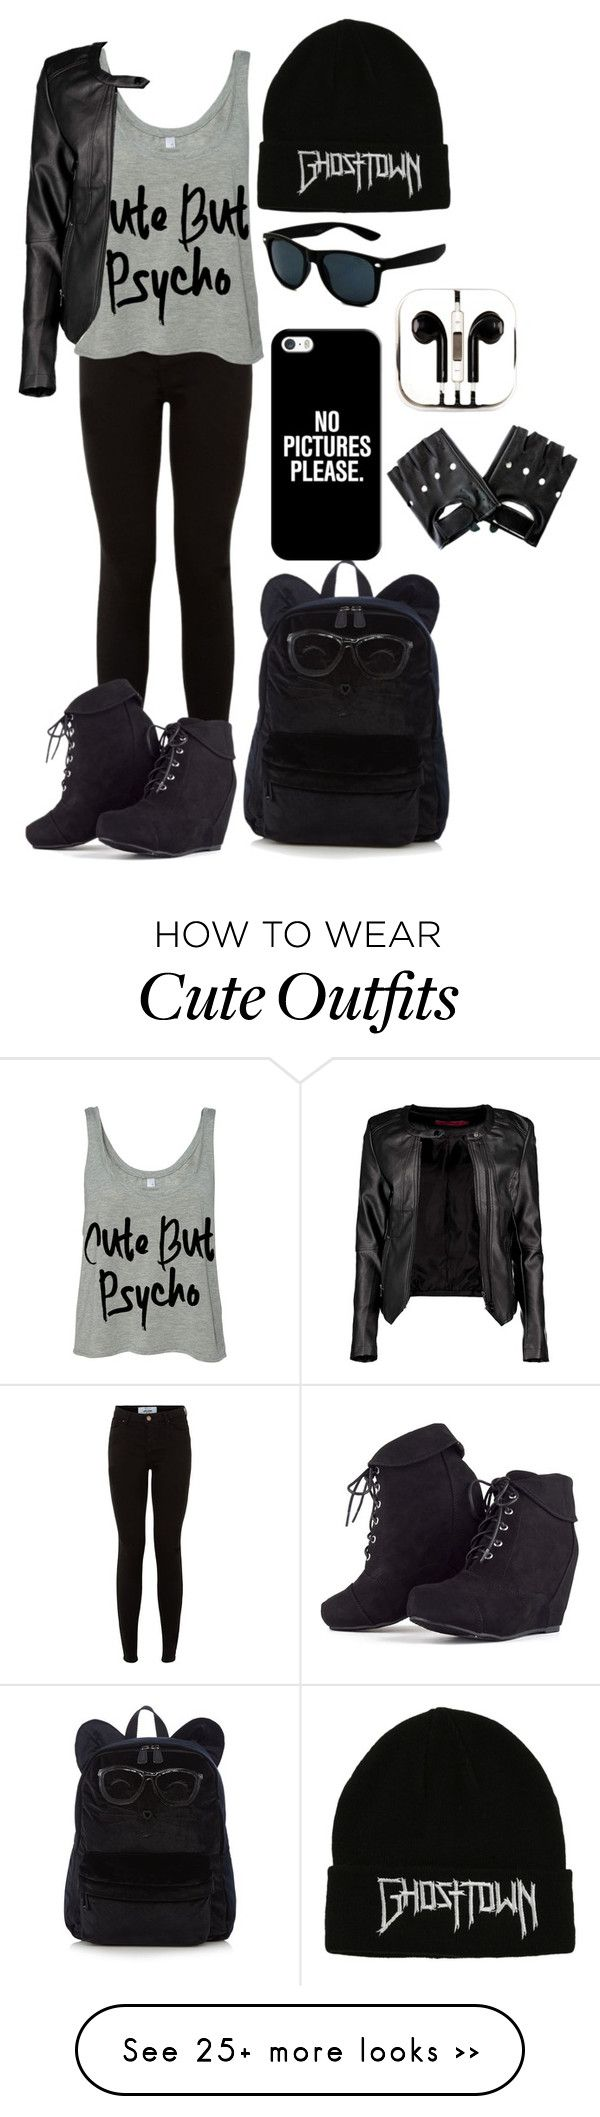 """""""Idek"""" by xxkmtmxx on Polyvore featuring Boohoo, PhunkeeTree and Casetify"""